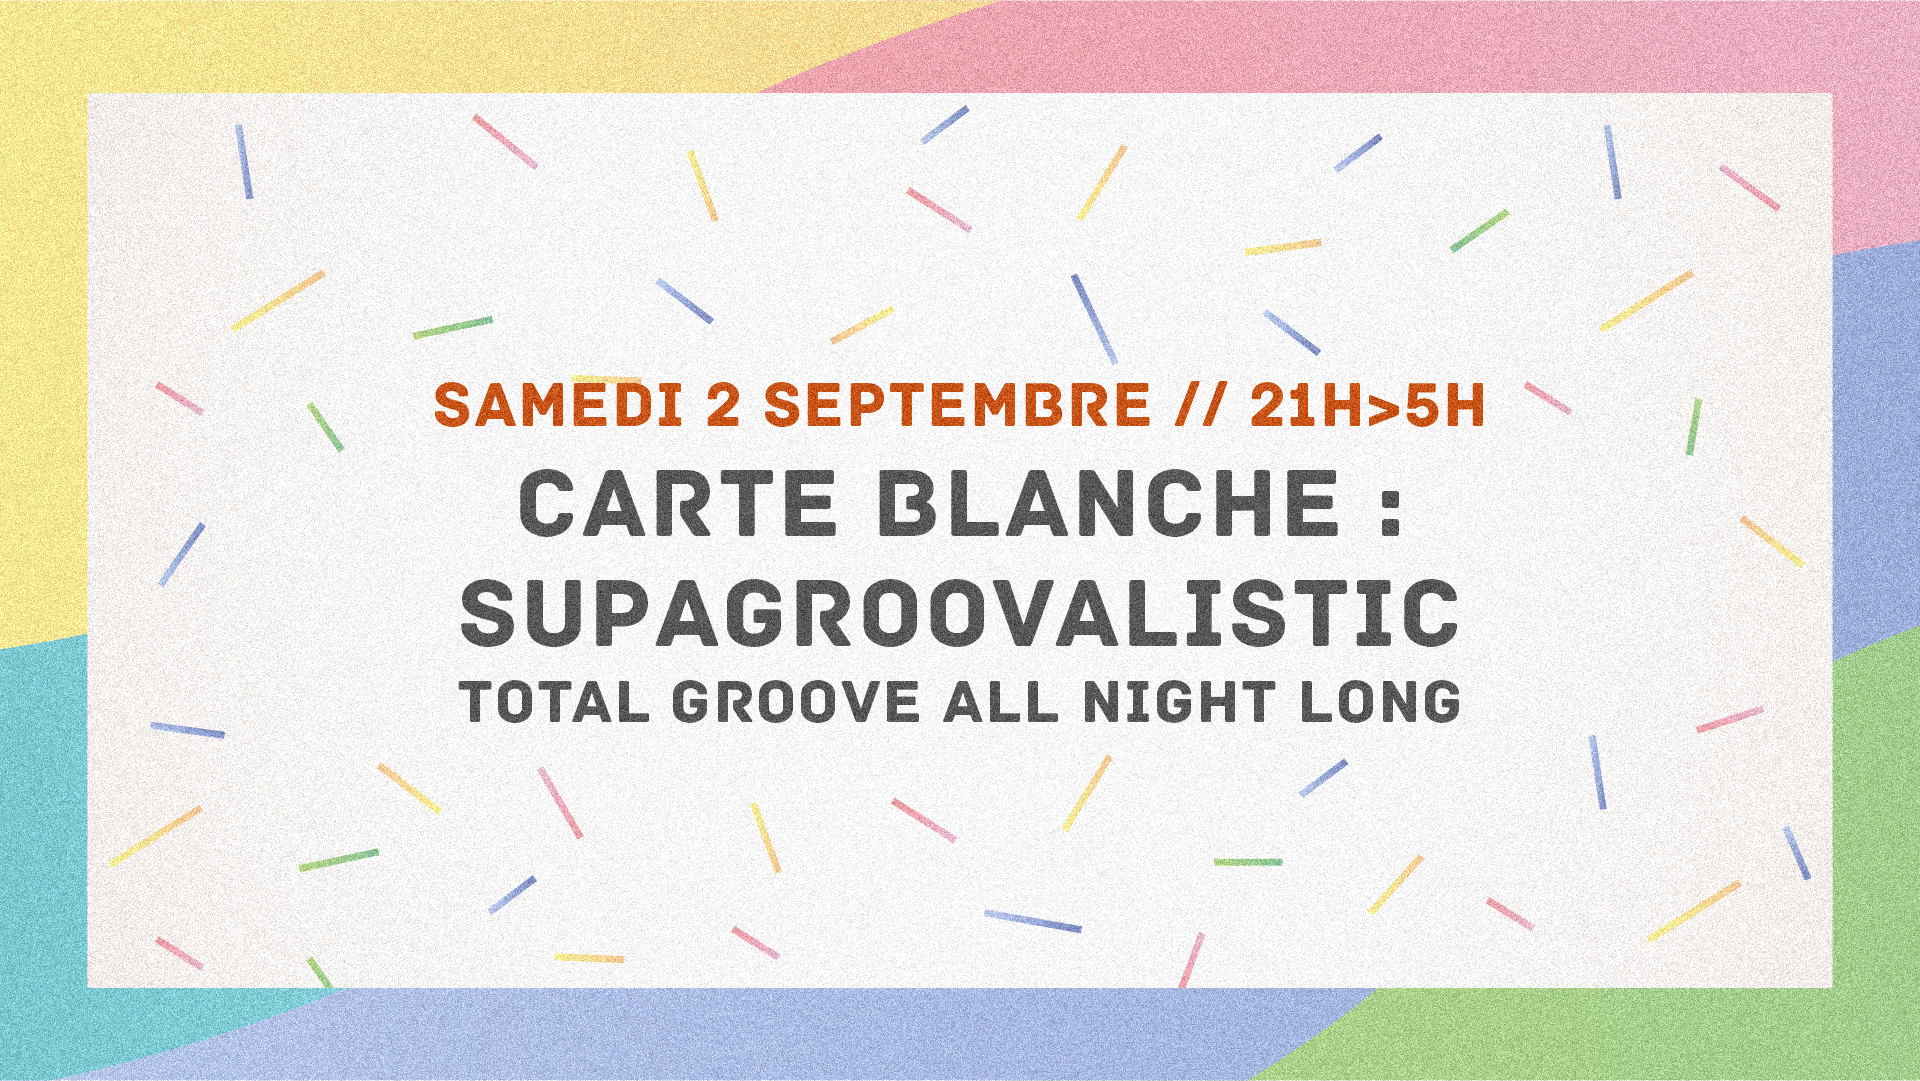 Carte blanche – SupaGroovalistic